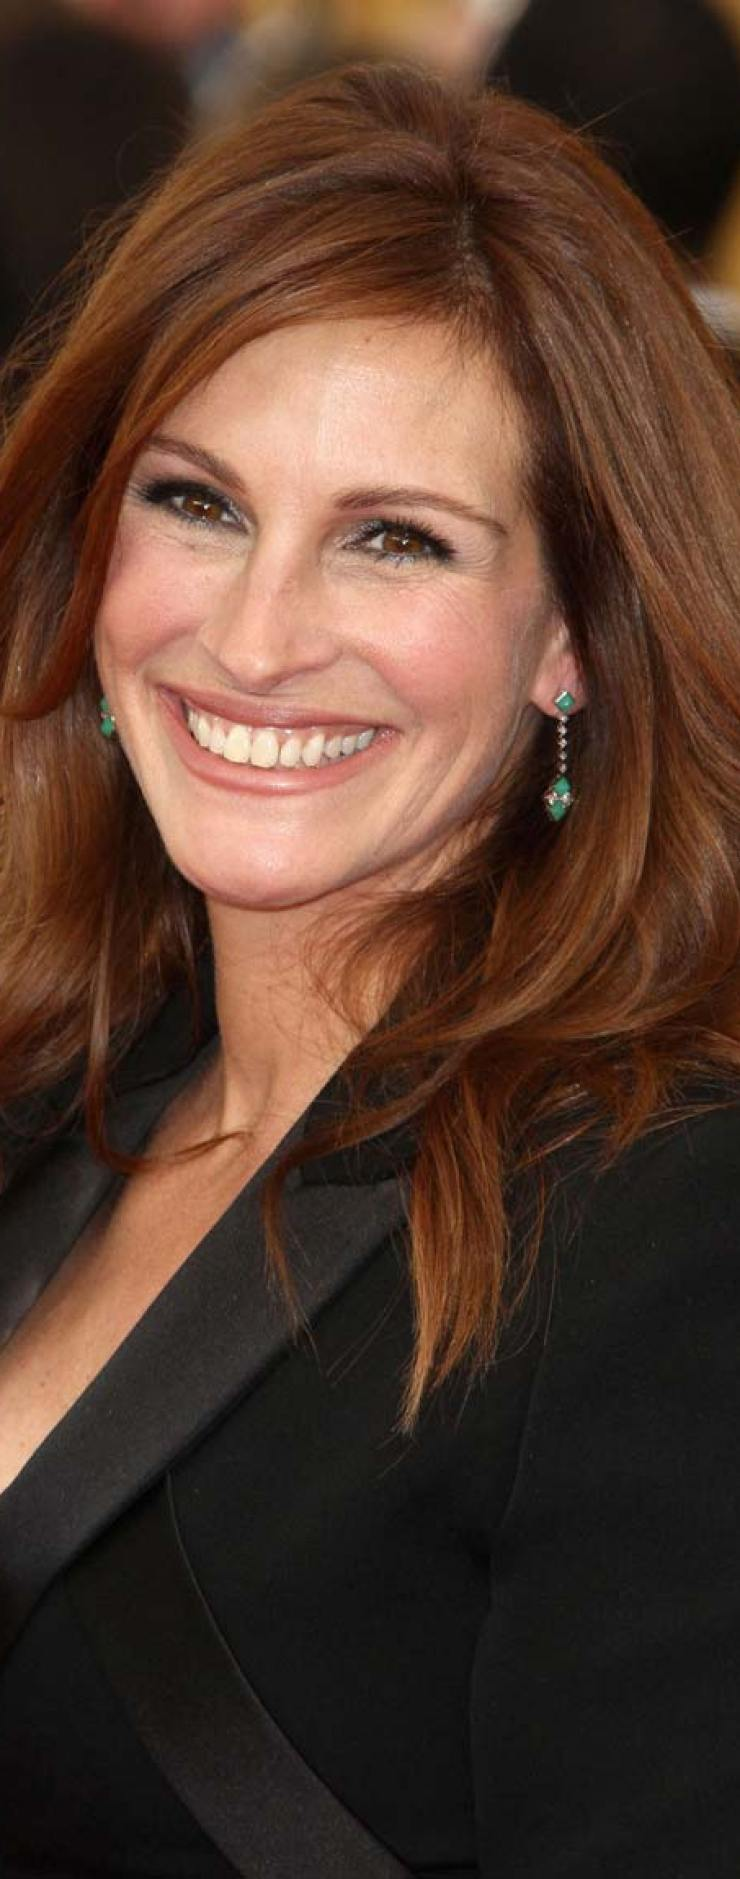 celebrities-body-parts-03-julia-roberts-smile